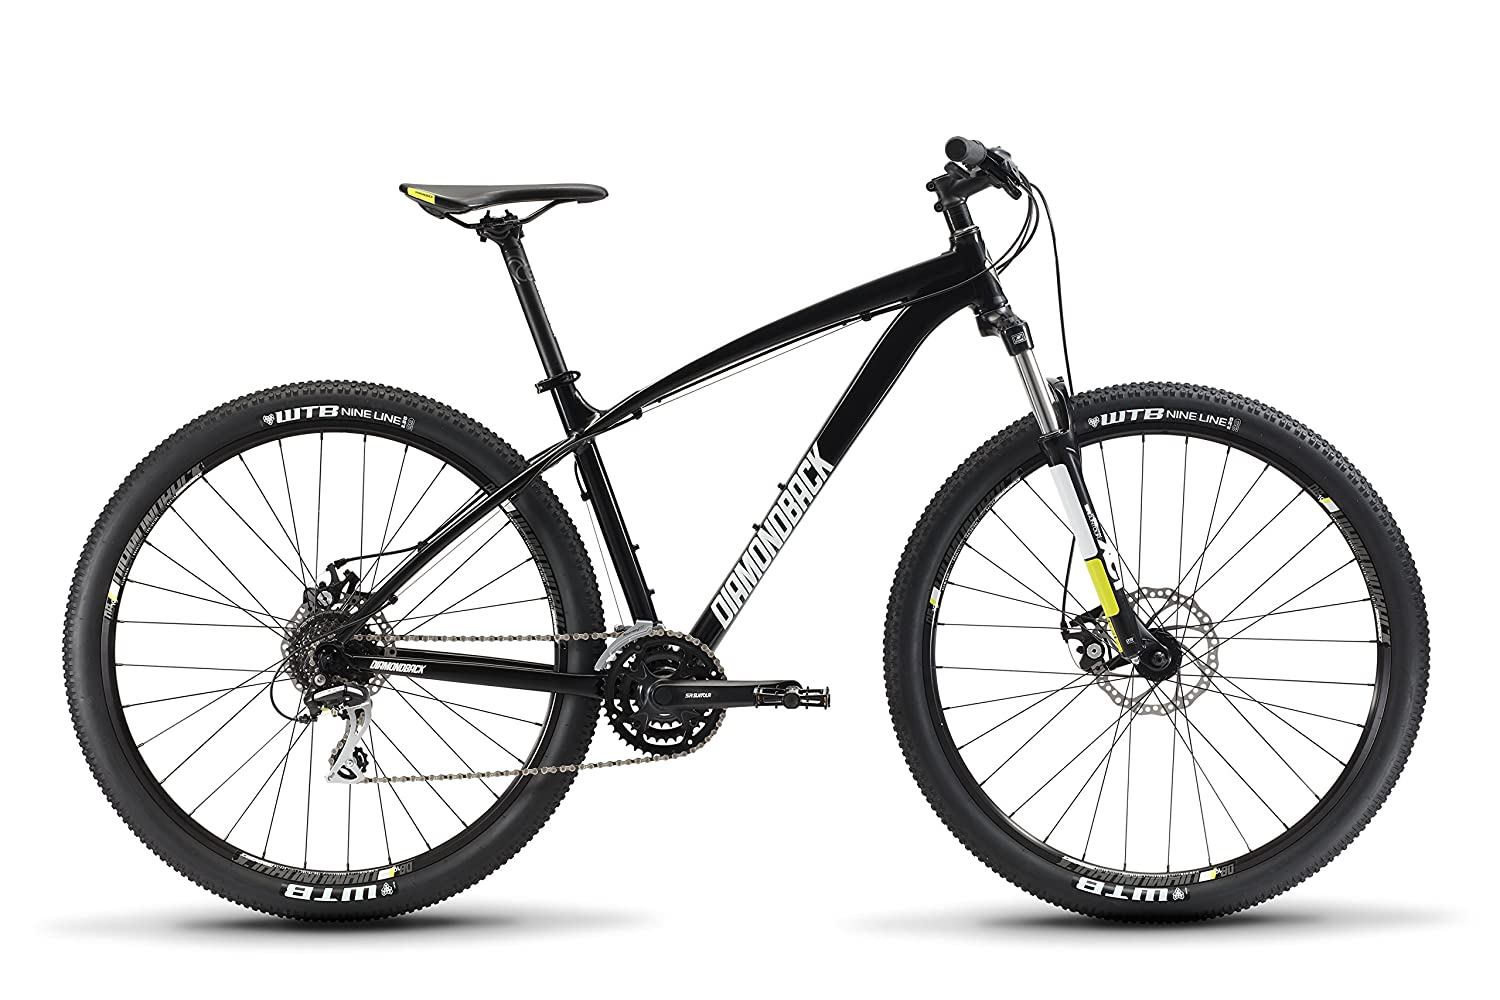 854b1bc68b8 Amazon.com : Diamondback Bicycles Overdrive 29er Complete READY RIDE  Hardtail Mountain Bike, 18